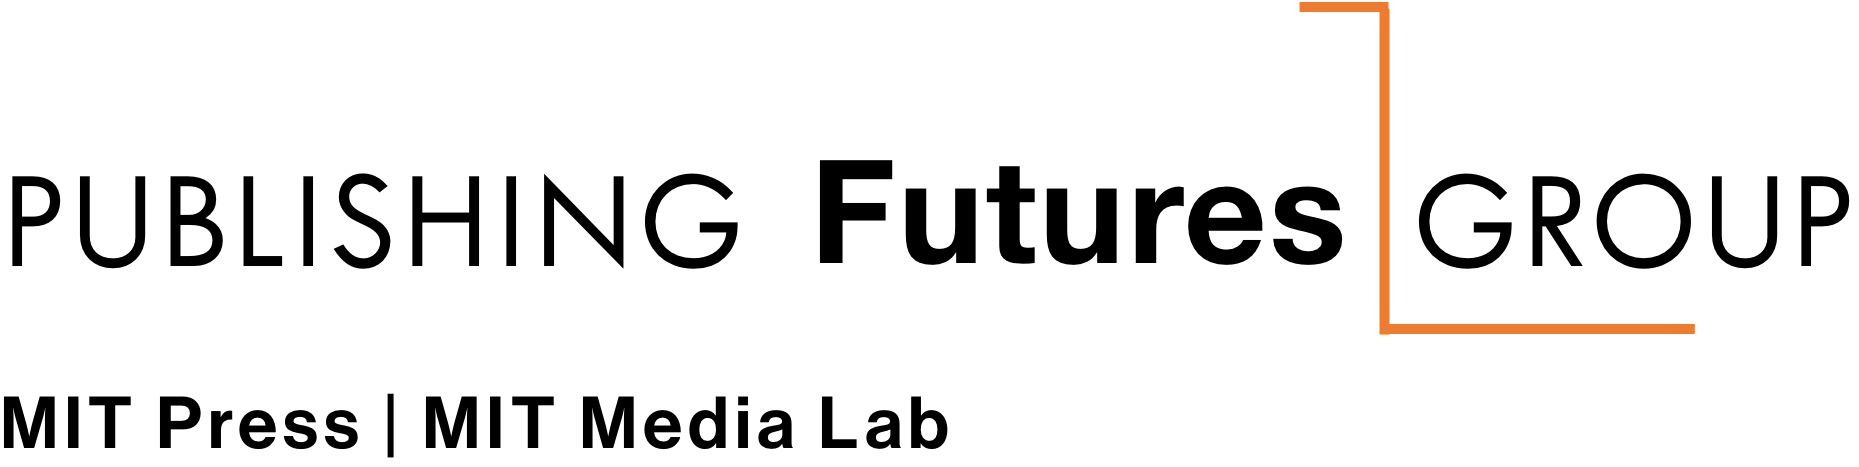 Publishing Futures Group